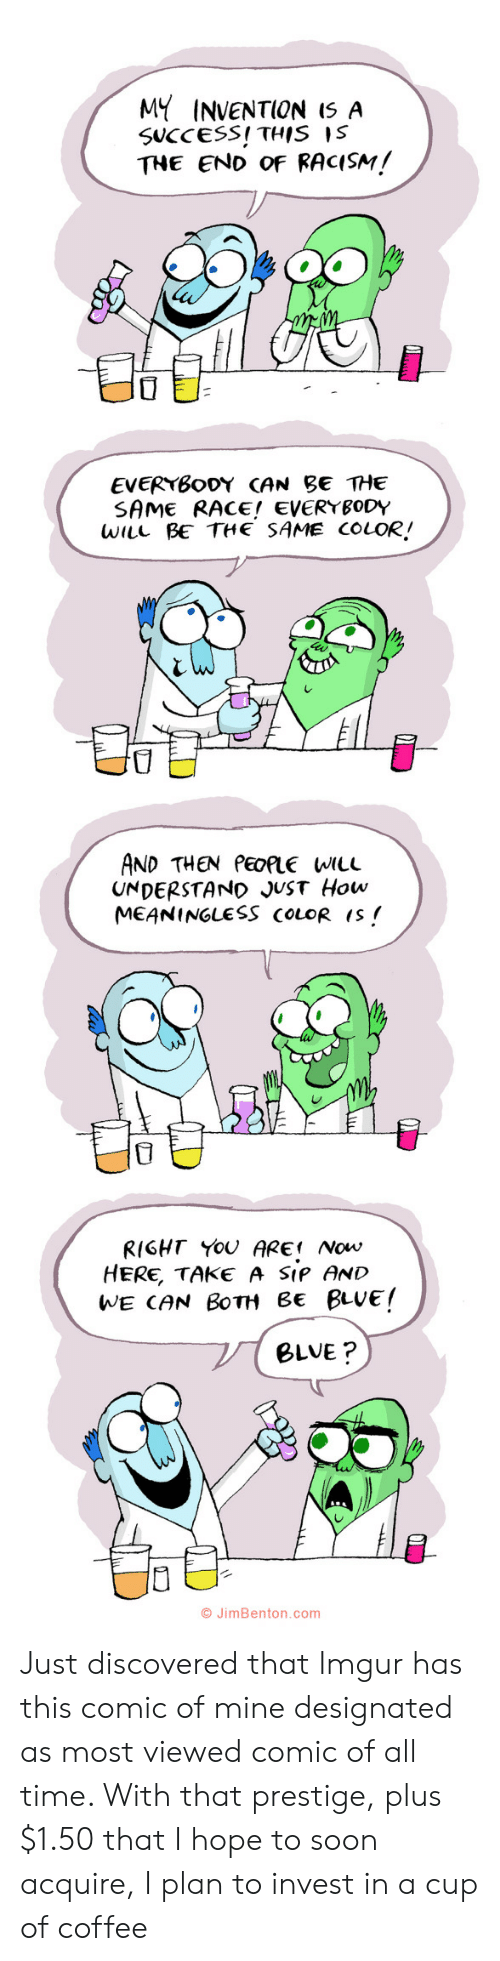 Success: MY INVENTION I5 A  SUCCESS! THIS IS  THE END OF RACISM!  EVERYBODY CAN BE THE  SAME RACE! EVERYBODY  WILL BE THE SAME COLOR!  AND THEN PEOPLE WILL  UNDERSTAND JUST How  MEANINGLESS COLOR IS  RIGHT YOU ARE Now  HERE, TAKE A SIP AND  WE CAN BOTH Be BLUE!  BLVE?  O JimBenton.com  י Just discovered that Imgur has this comic of mine designated as most viewed comic of all time. With that prestige, plus $1.50 that I hope to soon acquire, I plan to invest in a cup of coffee